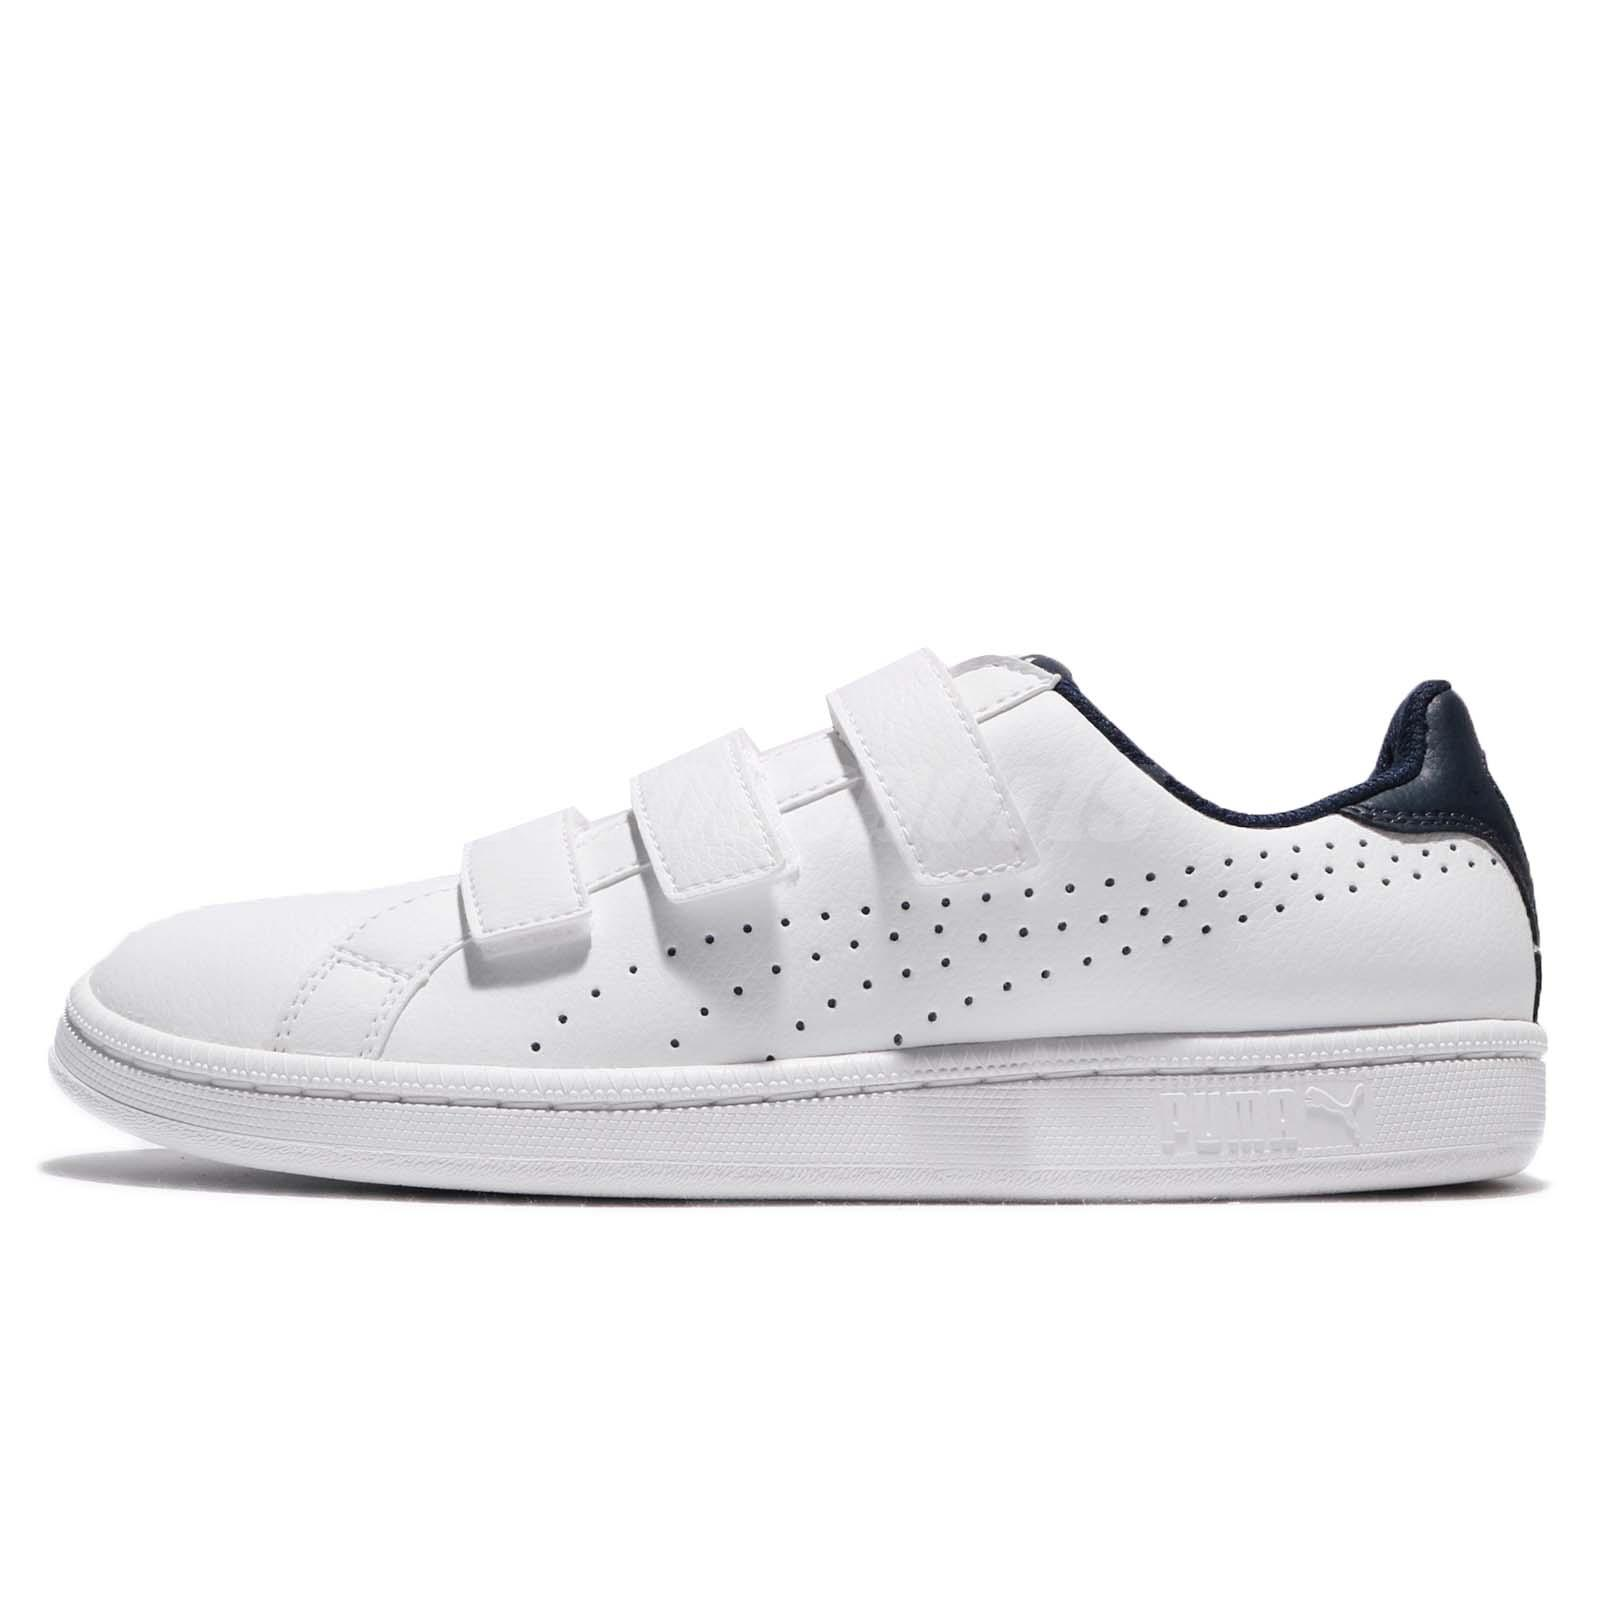 ae7f9a7a4eba Puma Smash Strap White Peacoat Leather Men Women Shoes Sneakers Trainer  36372301